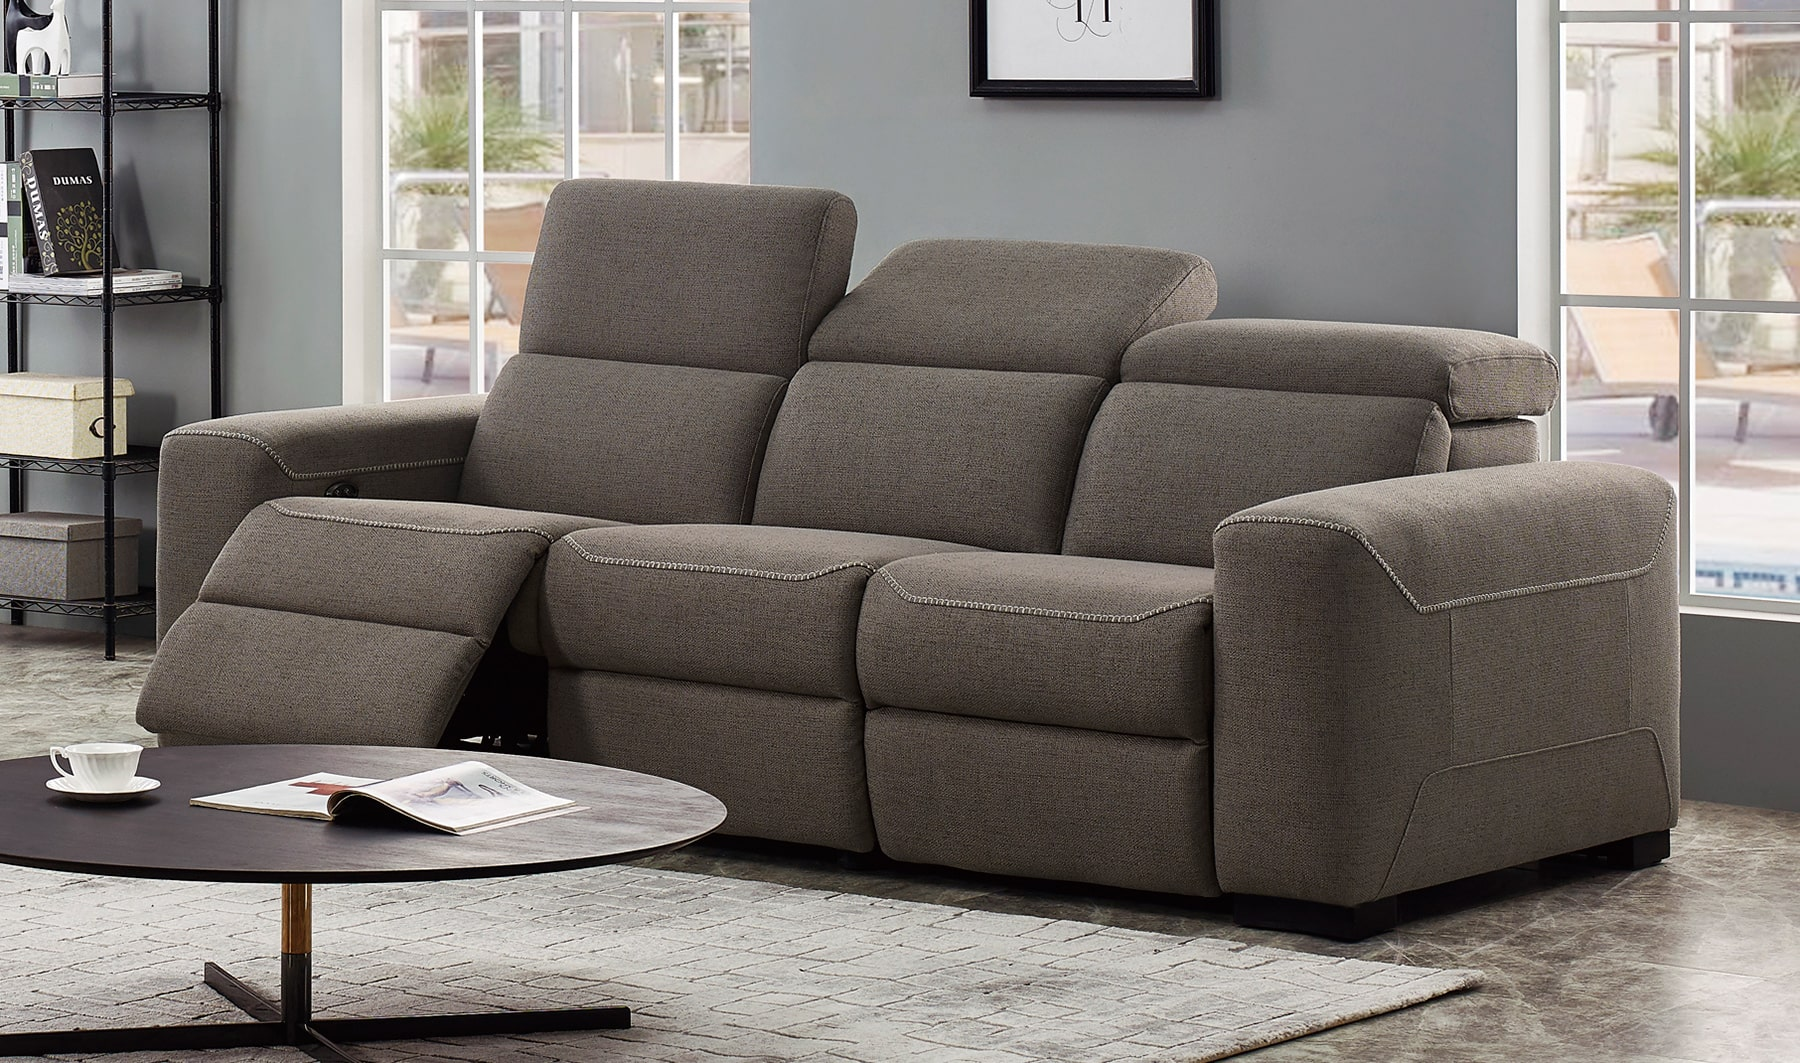 VIG Furniture Divani Casa Raywick Modern Brown Fabric Sofa with 2 Recliners